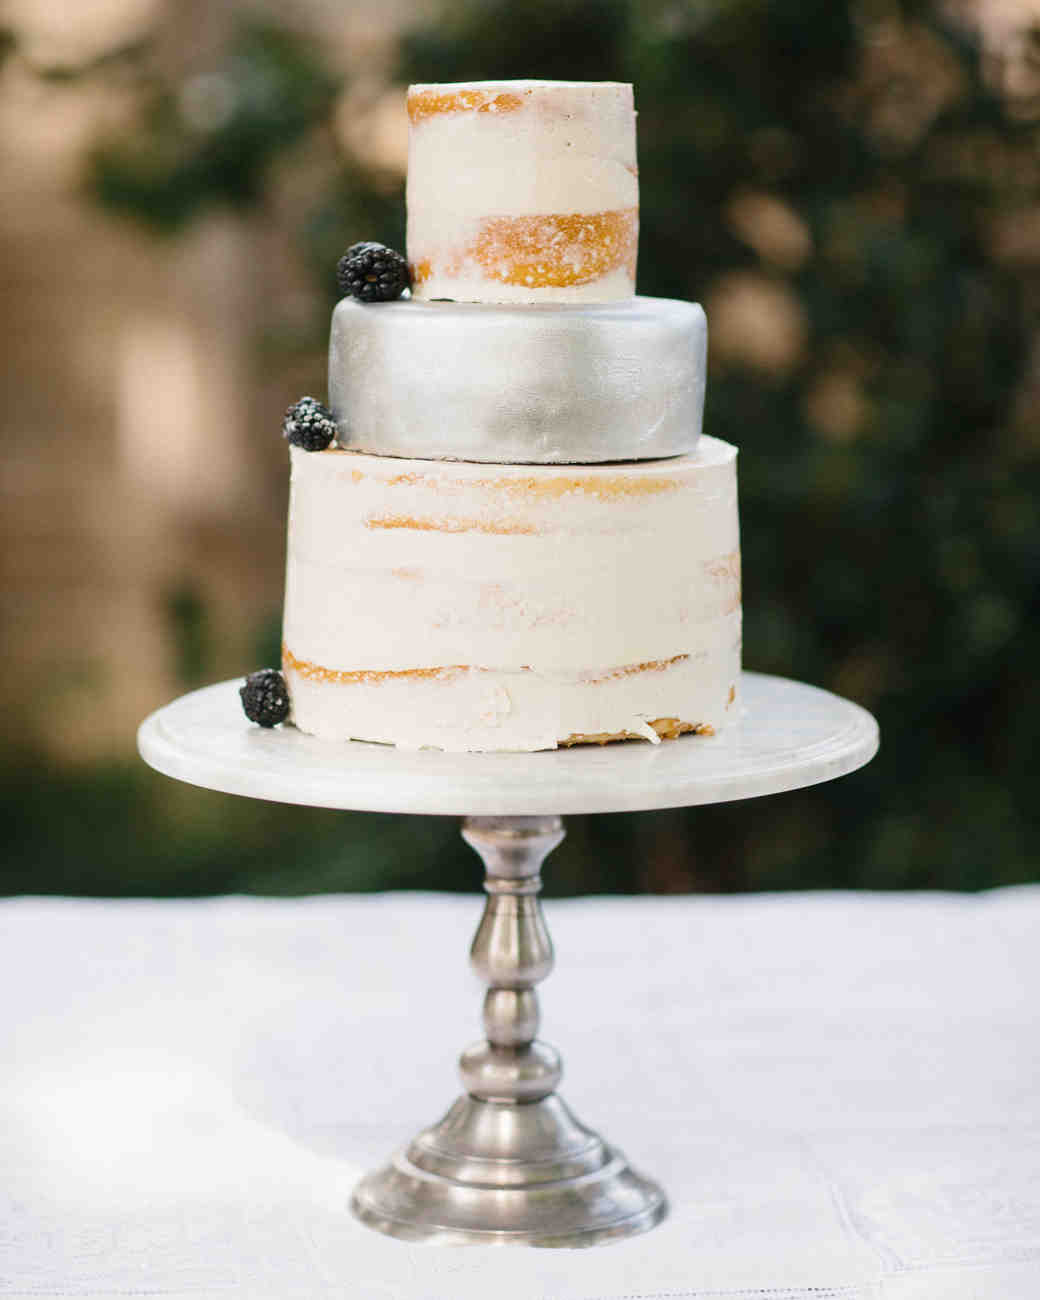 Wedding Cake with Silver Middle Tier